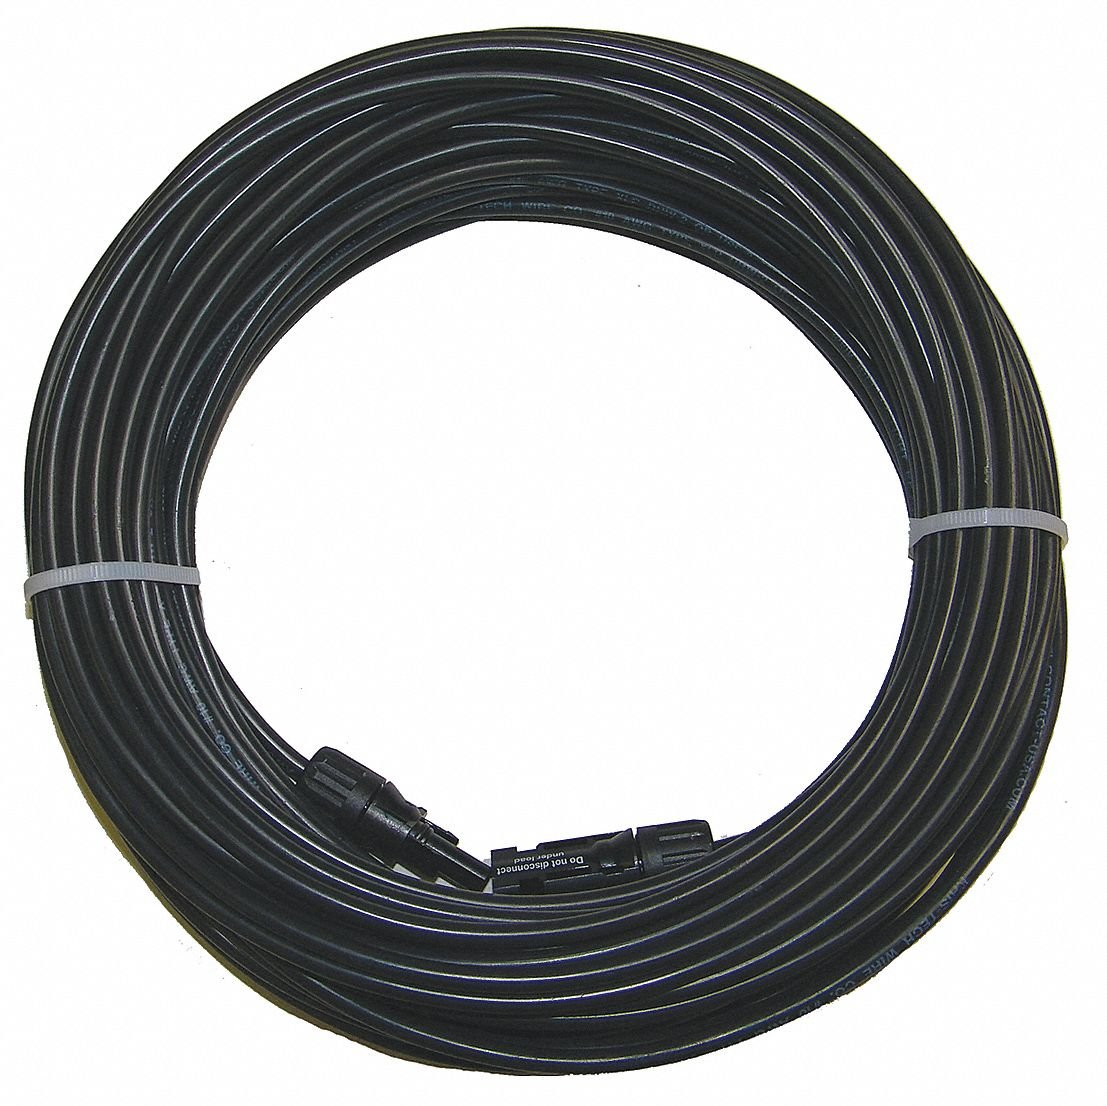 Solar Panel Cable 100 Ft - Mc4 Pv Extension- 10 AWG - 1000vdc- Pv Wire - Sunlight Resistant by Multi-Contact by Multi-Contact